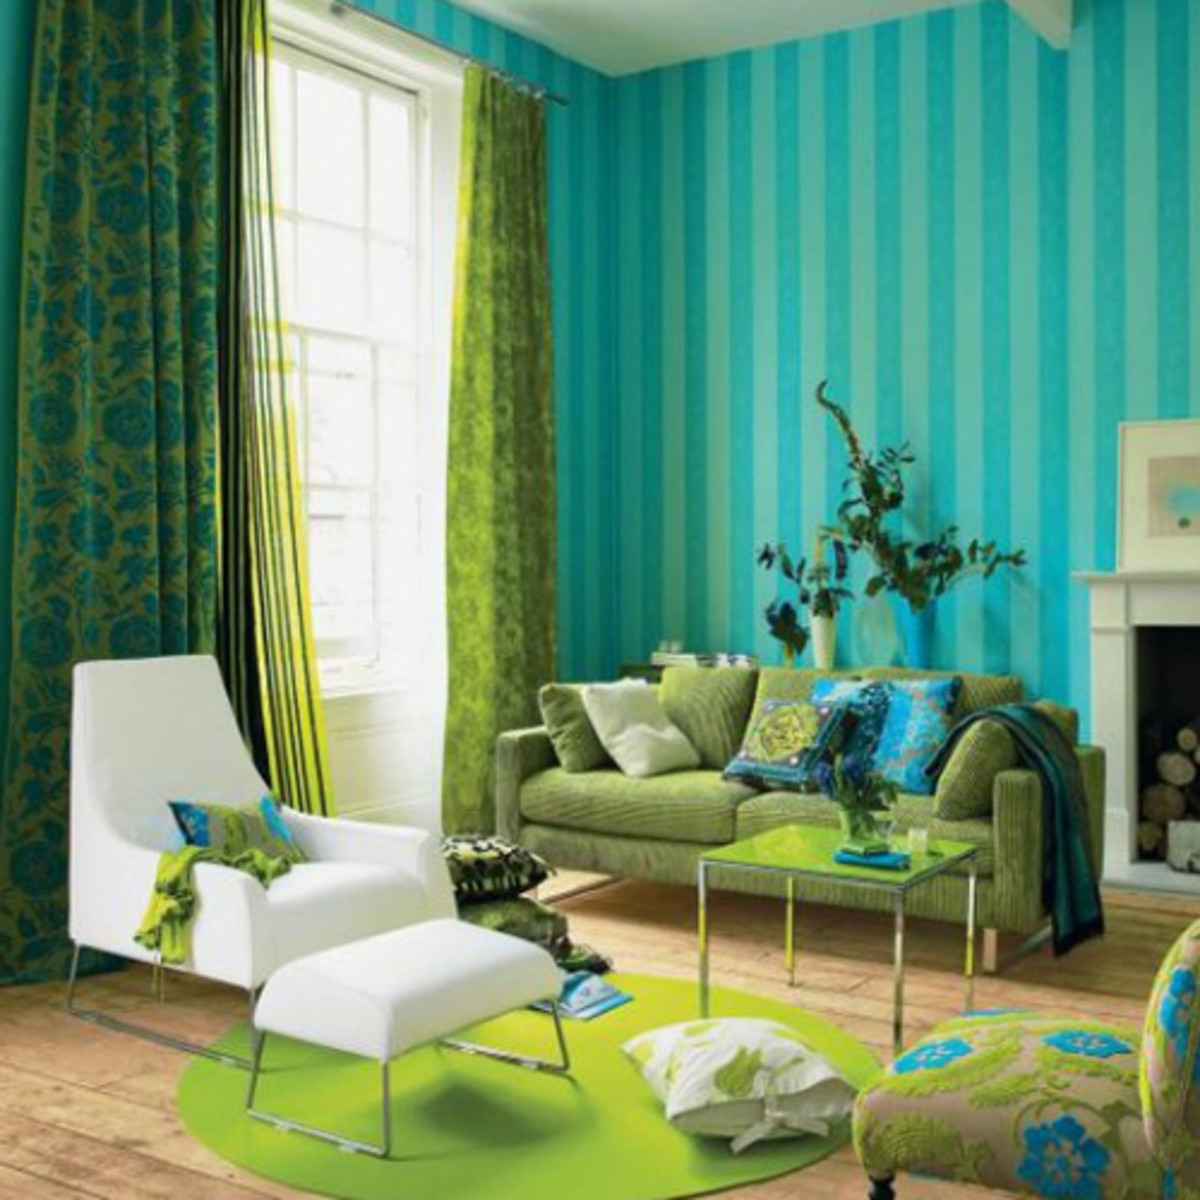 Turquoise & Green Room Decorating Ideas